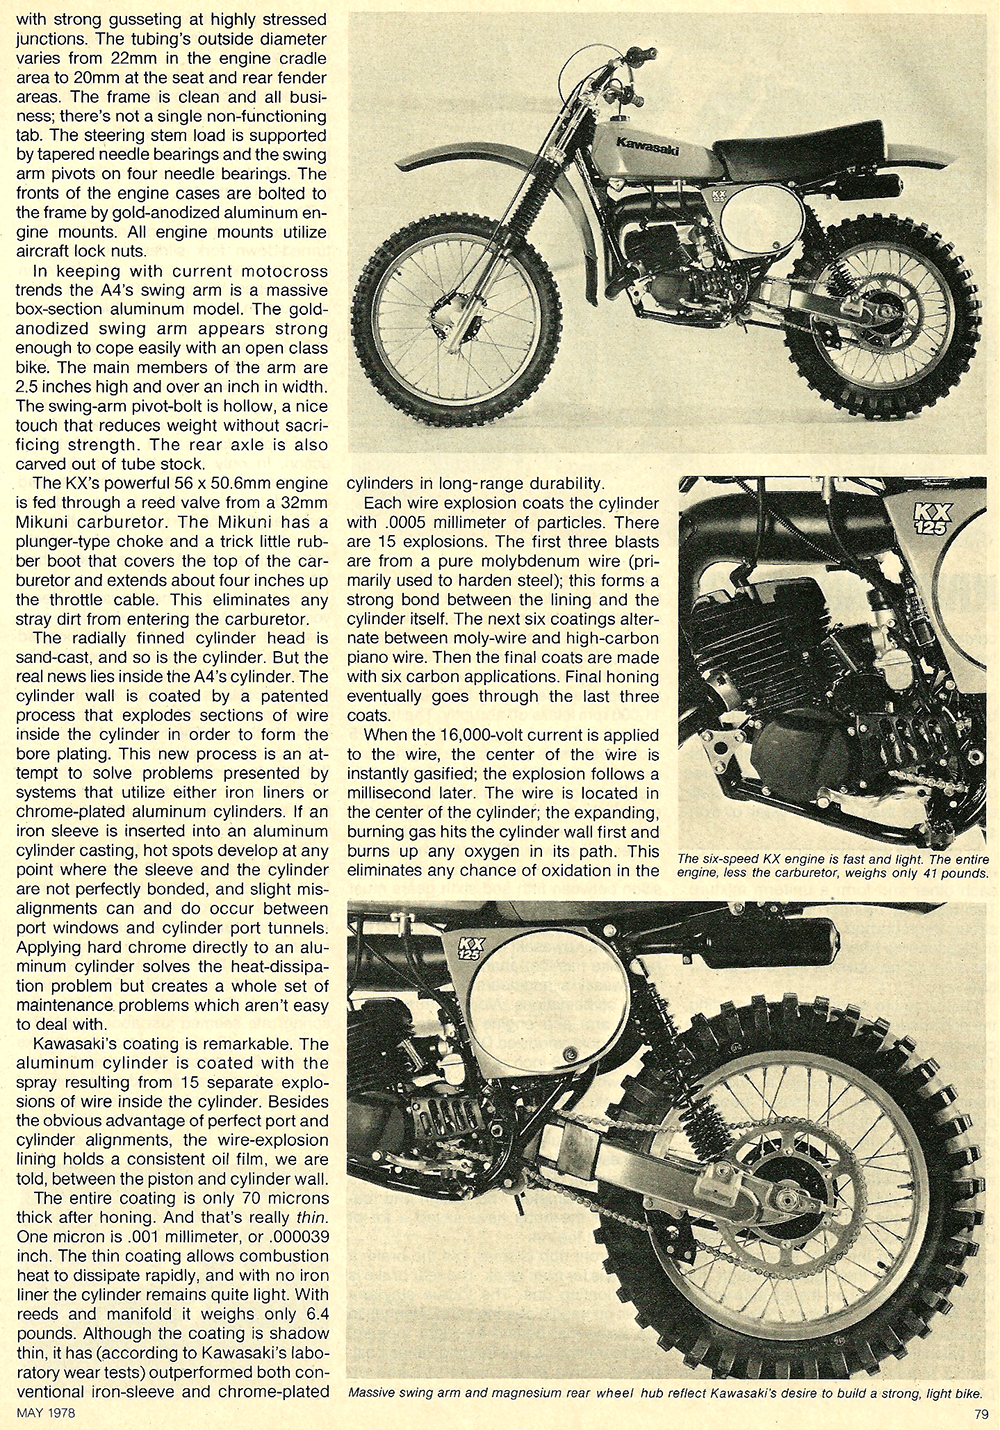 1978 Kawasaki KX125 A4 road test 04.jpg